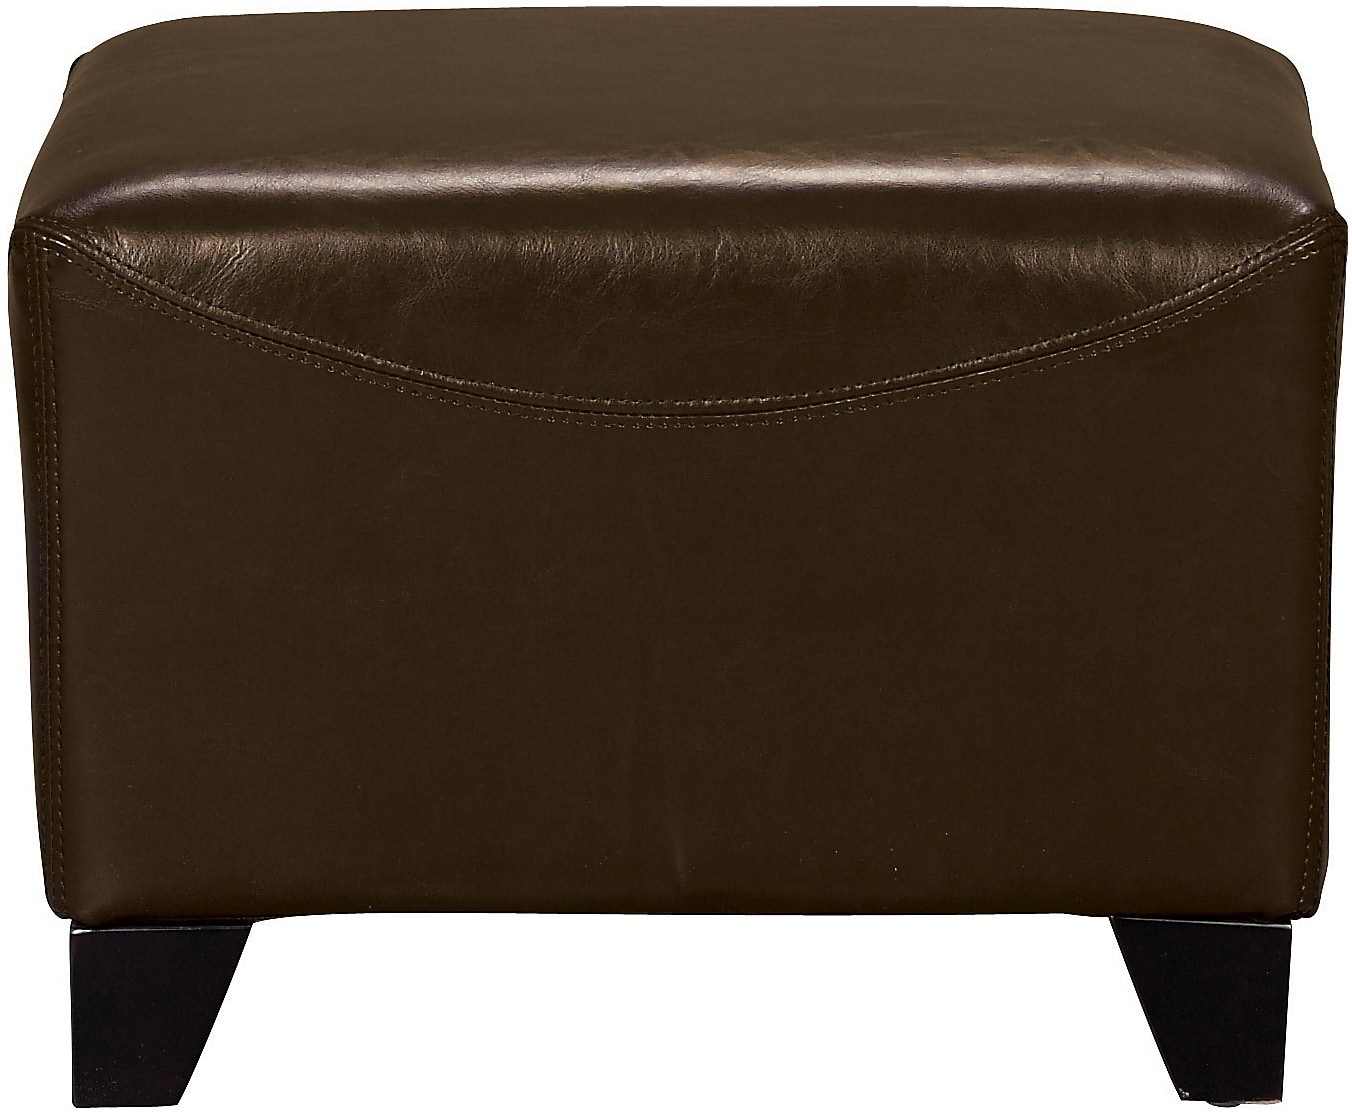 Living Room Furniture - Bonded Leather Ottoman - Brown